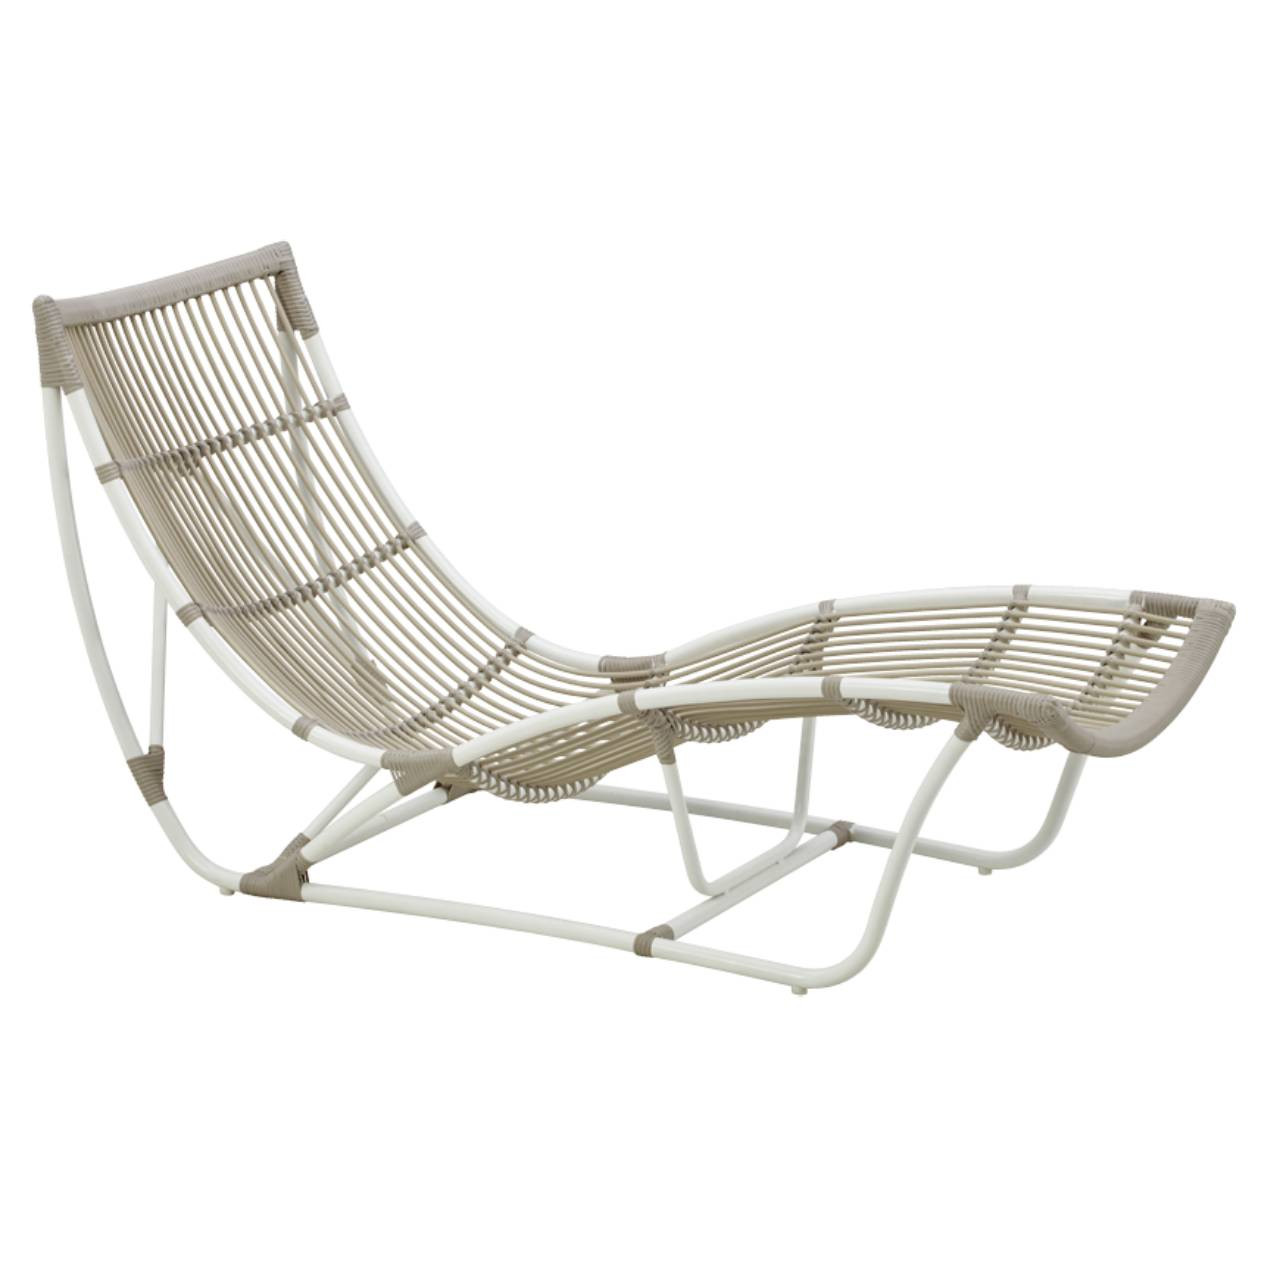 Chaise Lounge Rattan Sintetico.Sika Design Michelangelo Daybed Exterior Outdoor Chaise Lounge